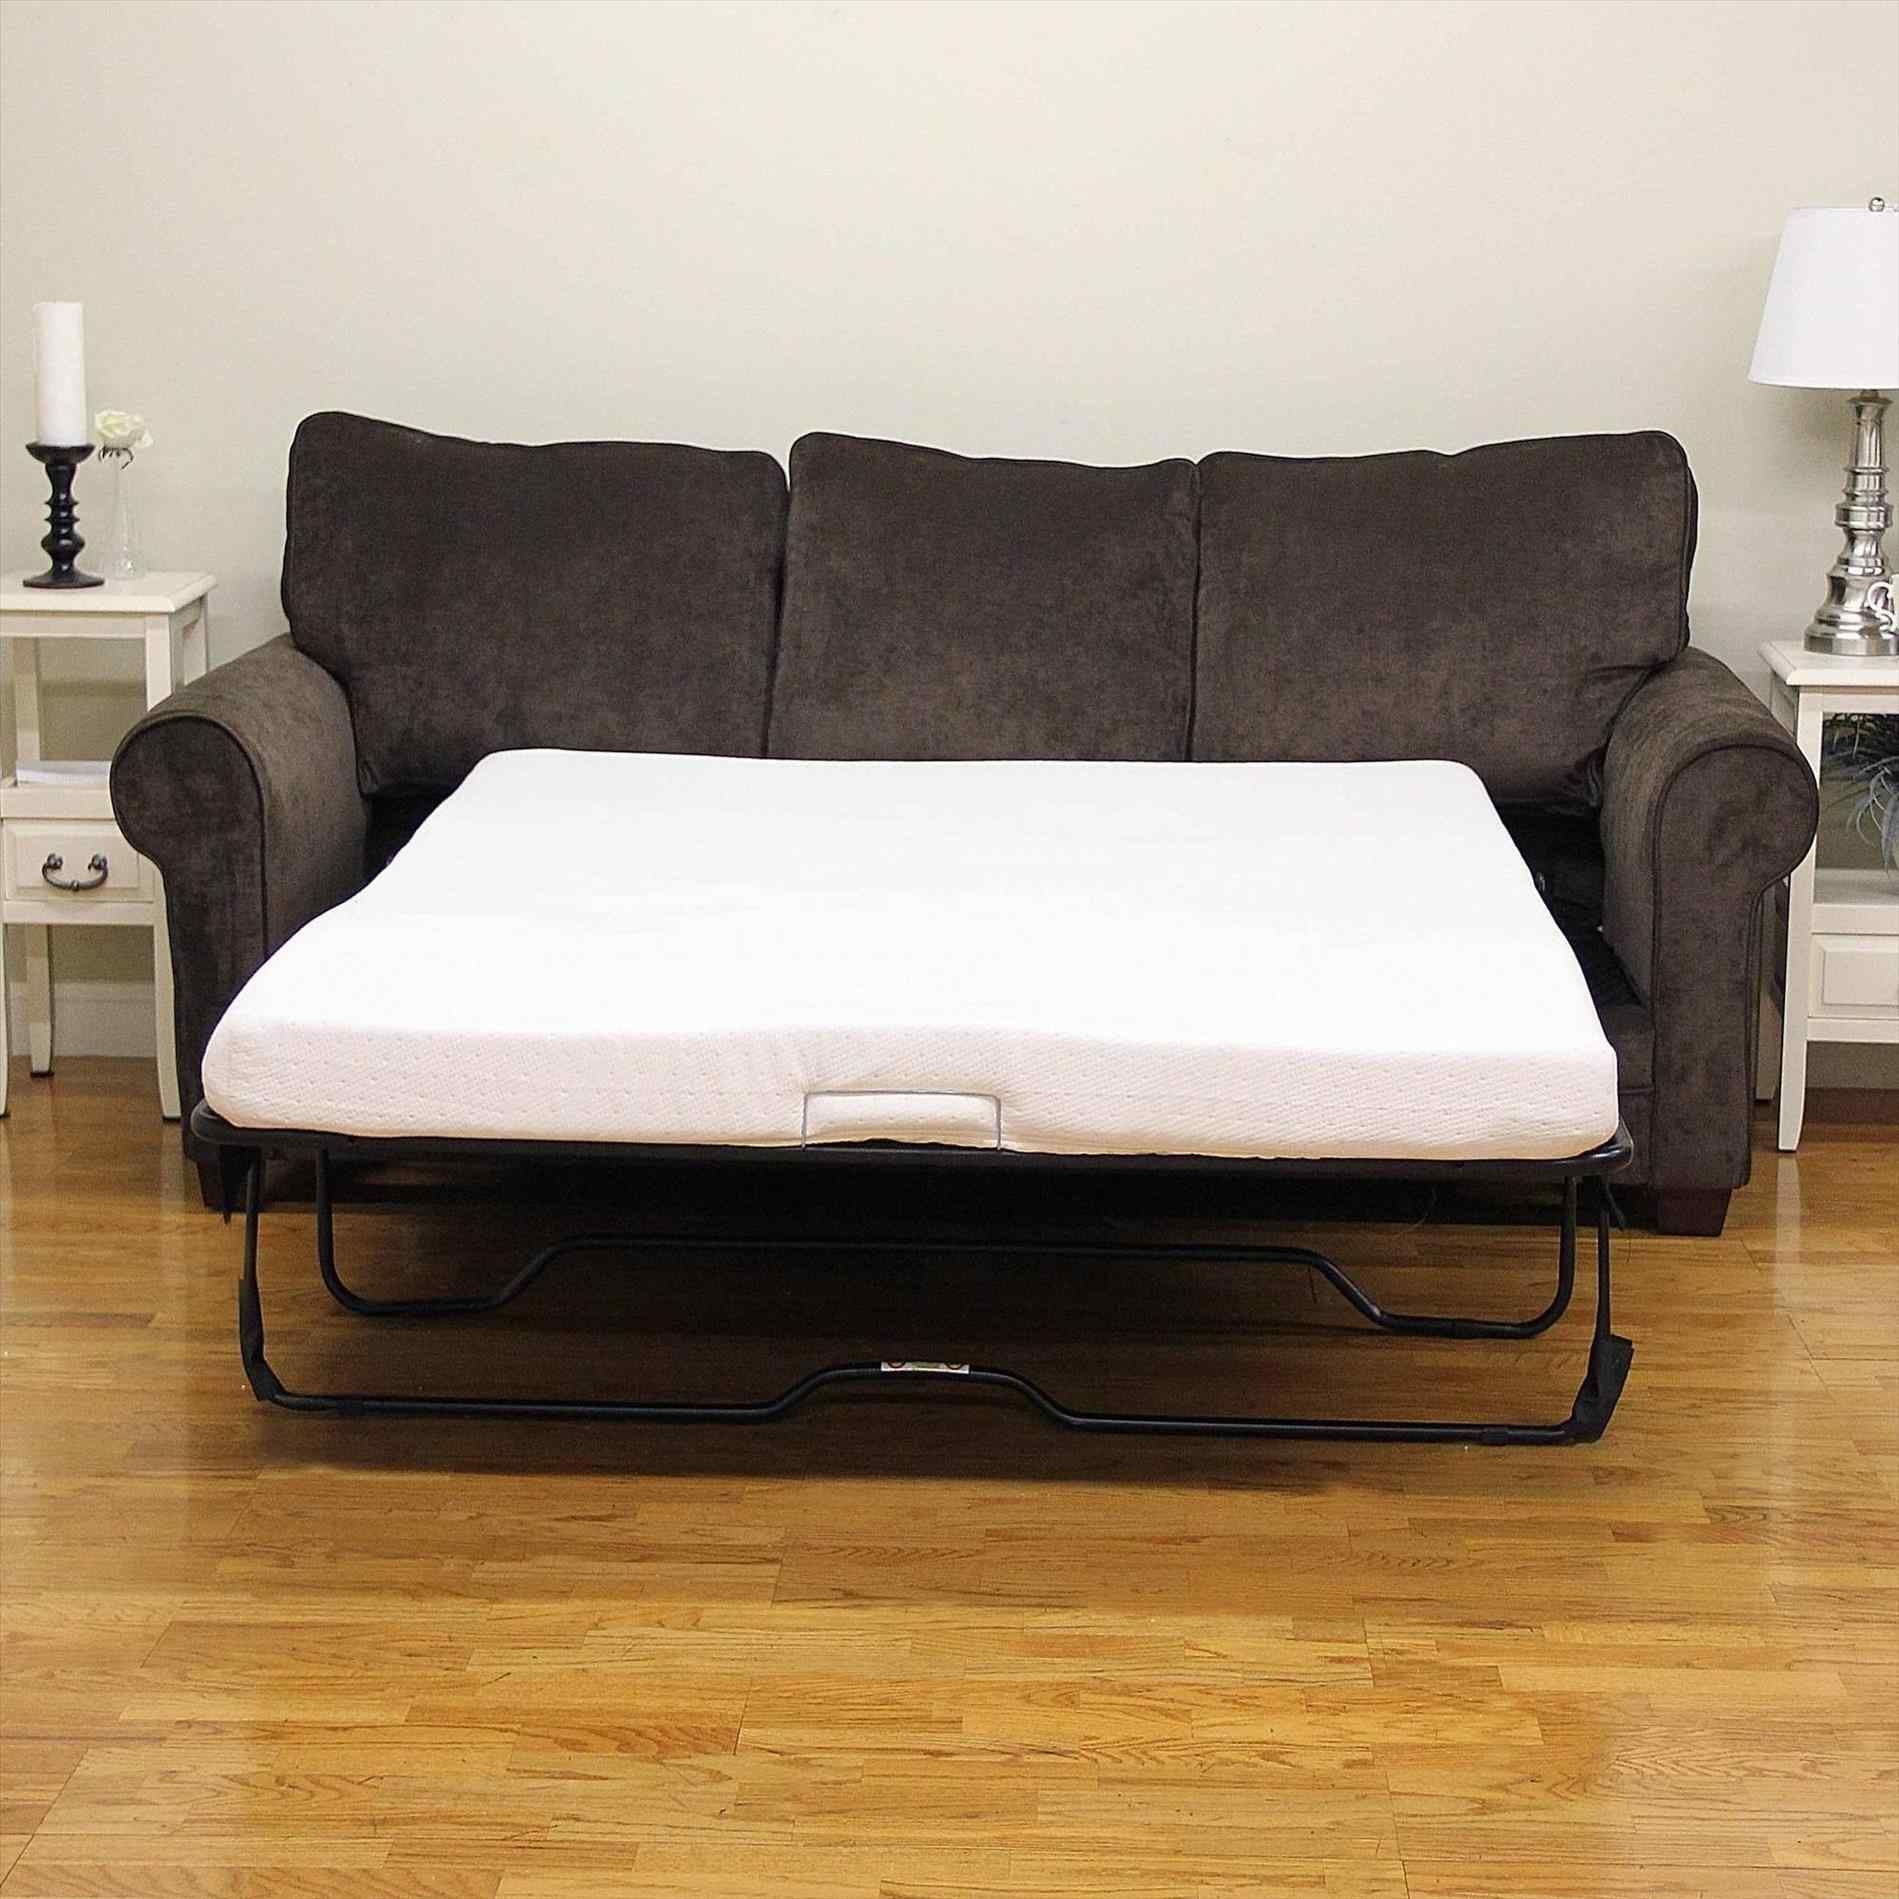 Exceptionnel Collection Sleeper Sofa Tempurpedic Mattress In Replacement For Latest  Living Bedding Modern Folding Foam Beds Bed